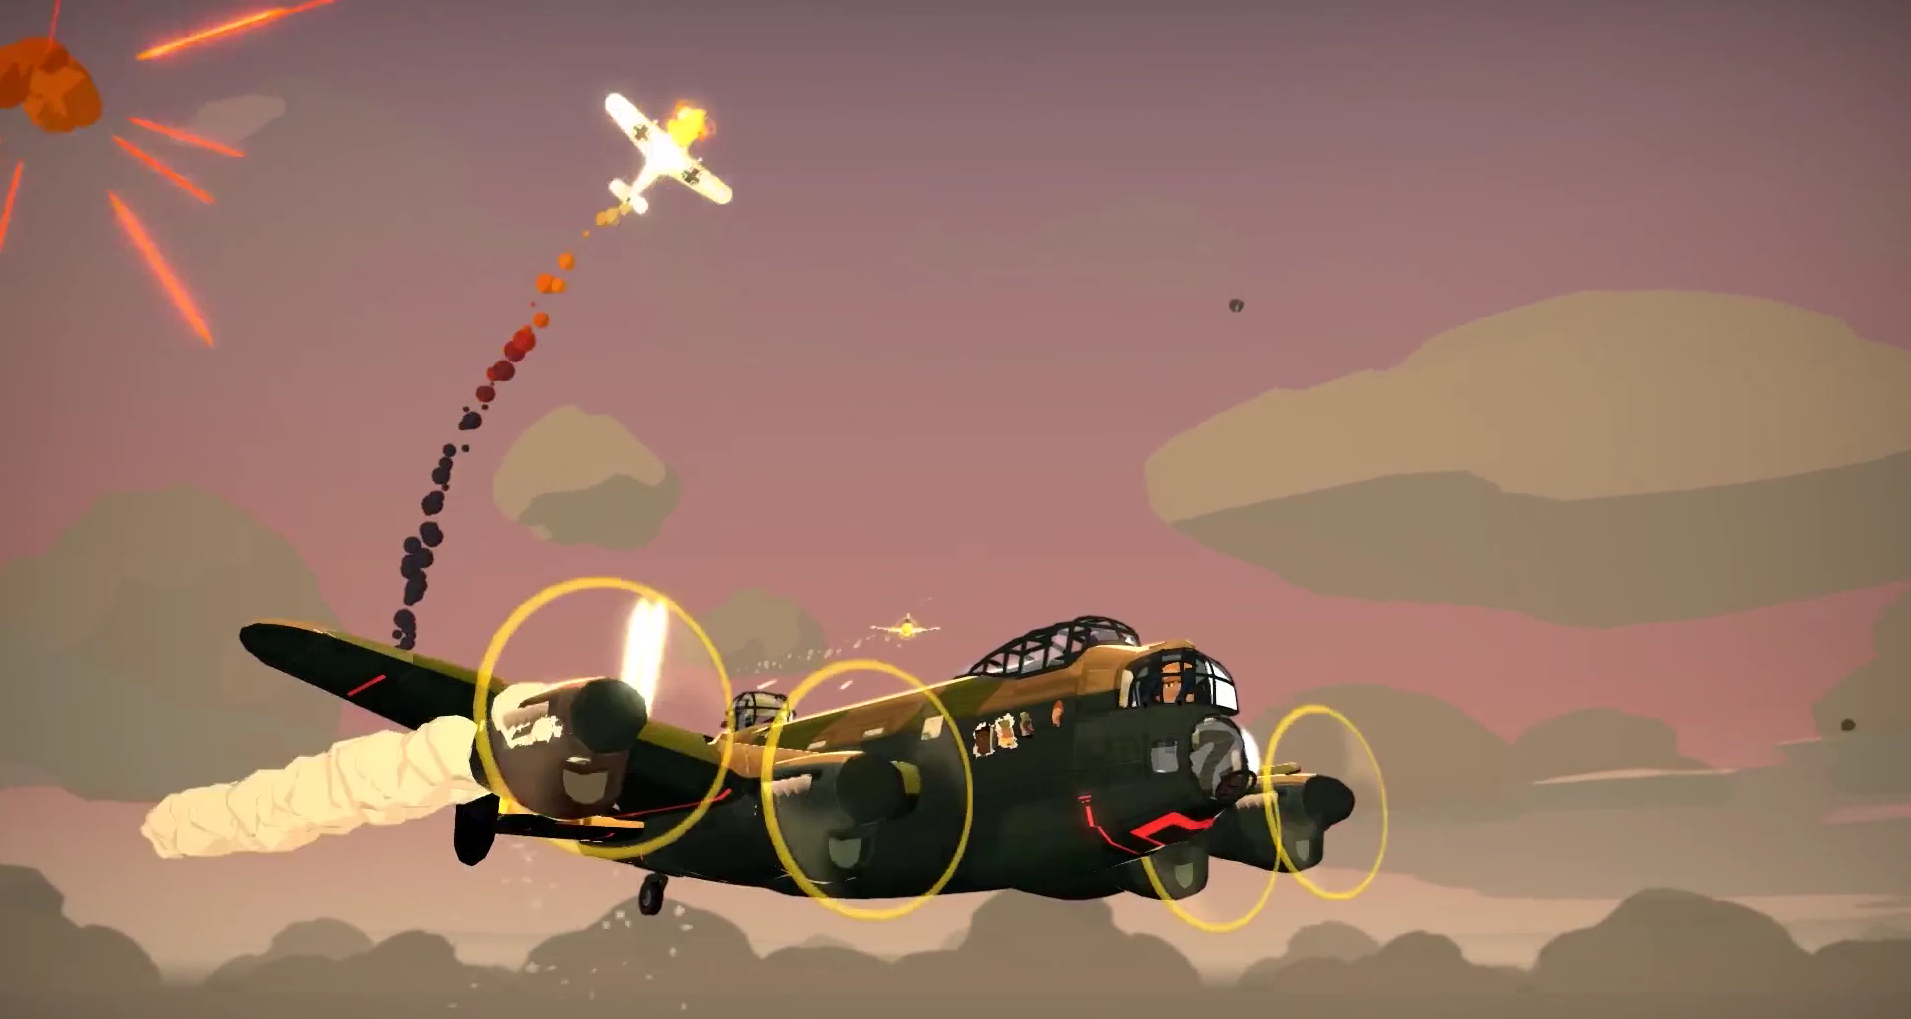 Bomber Crew blowing up consoles today